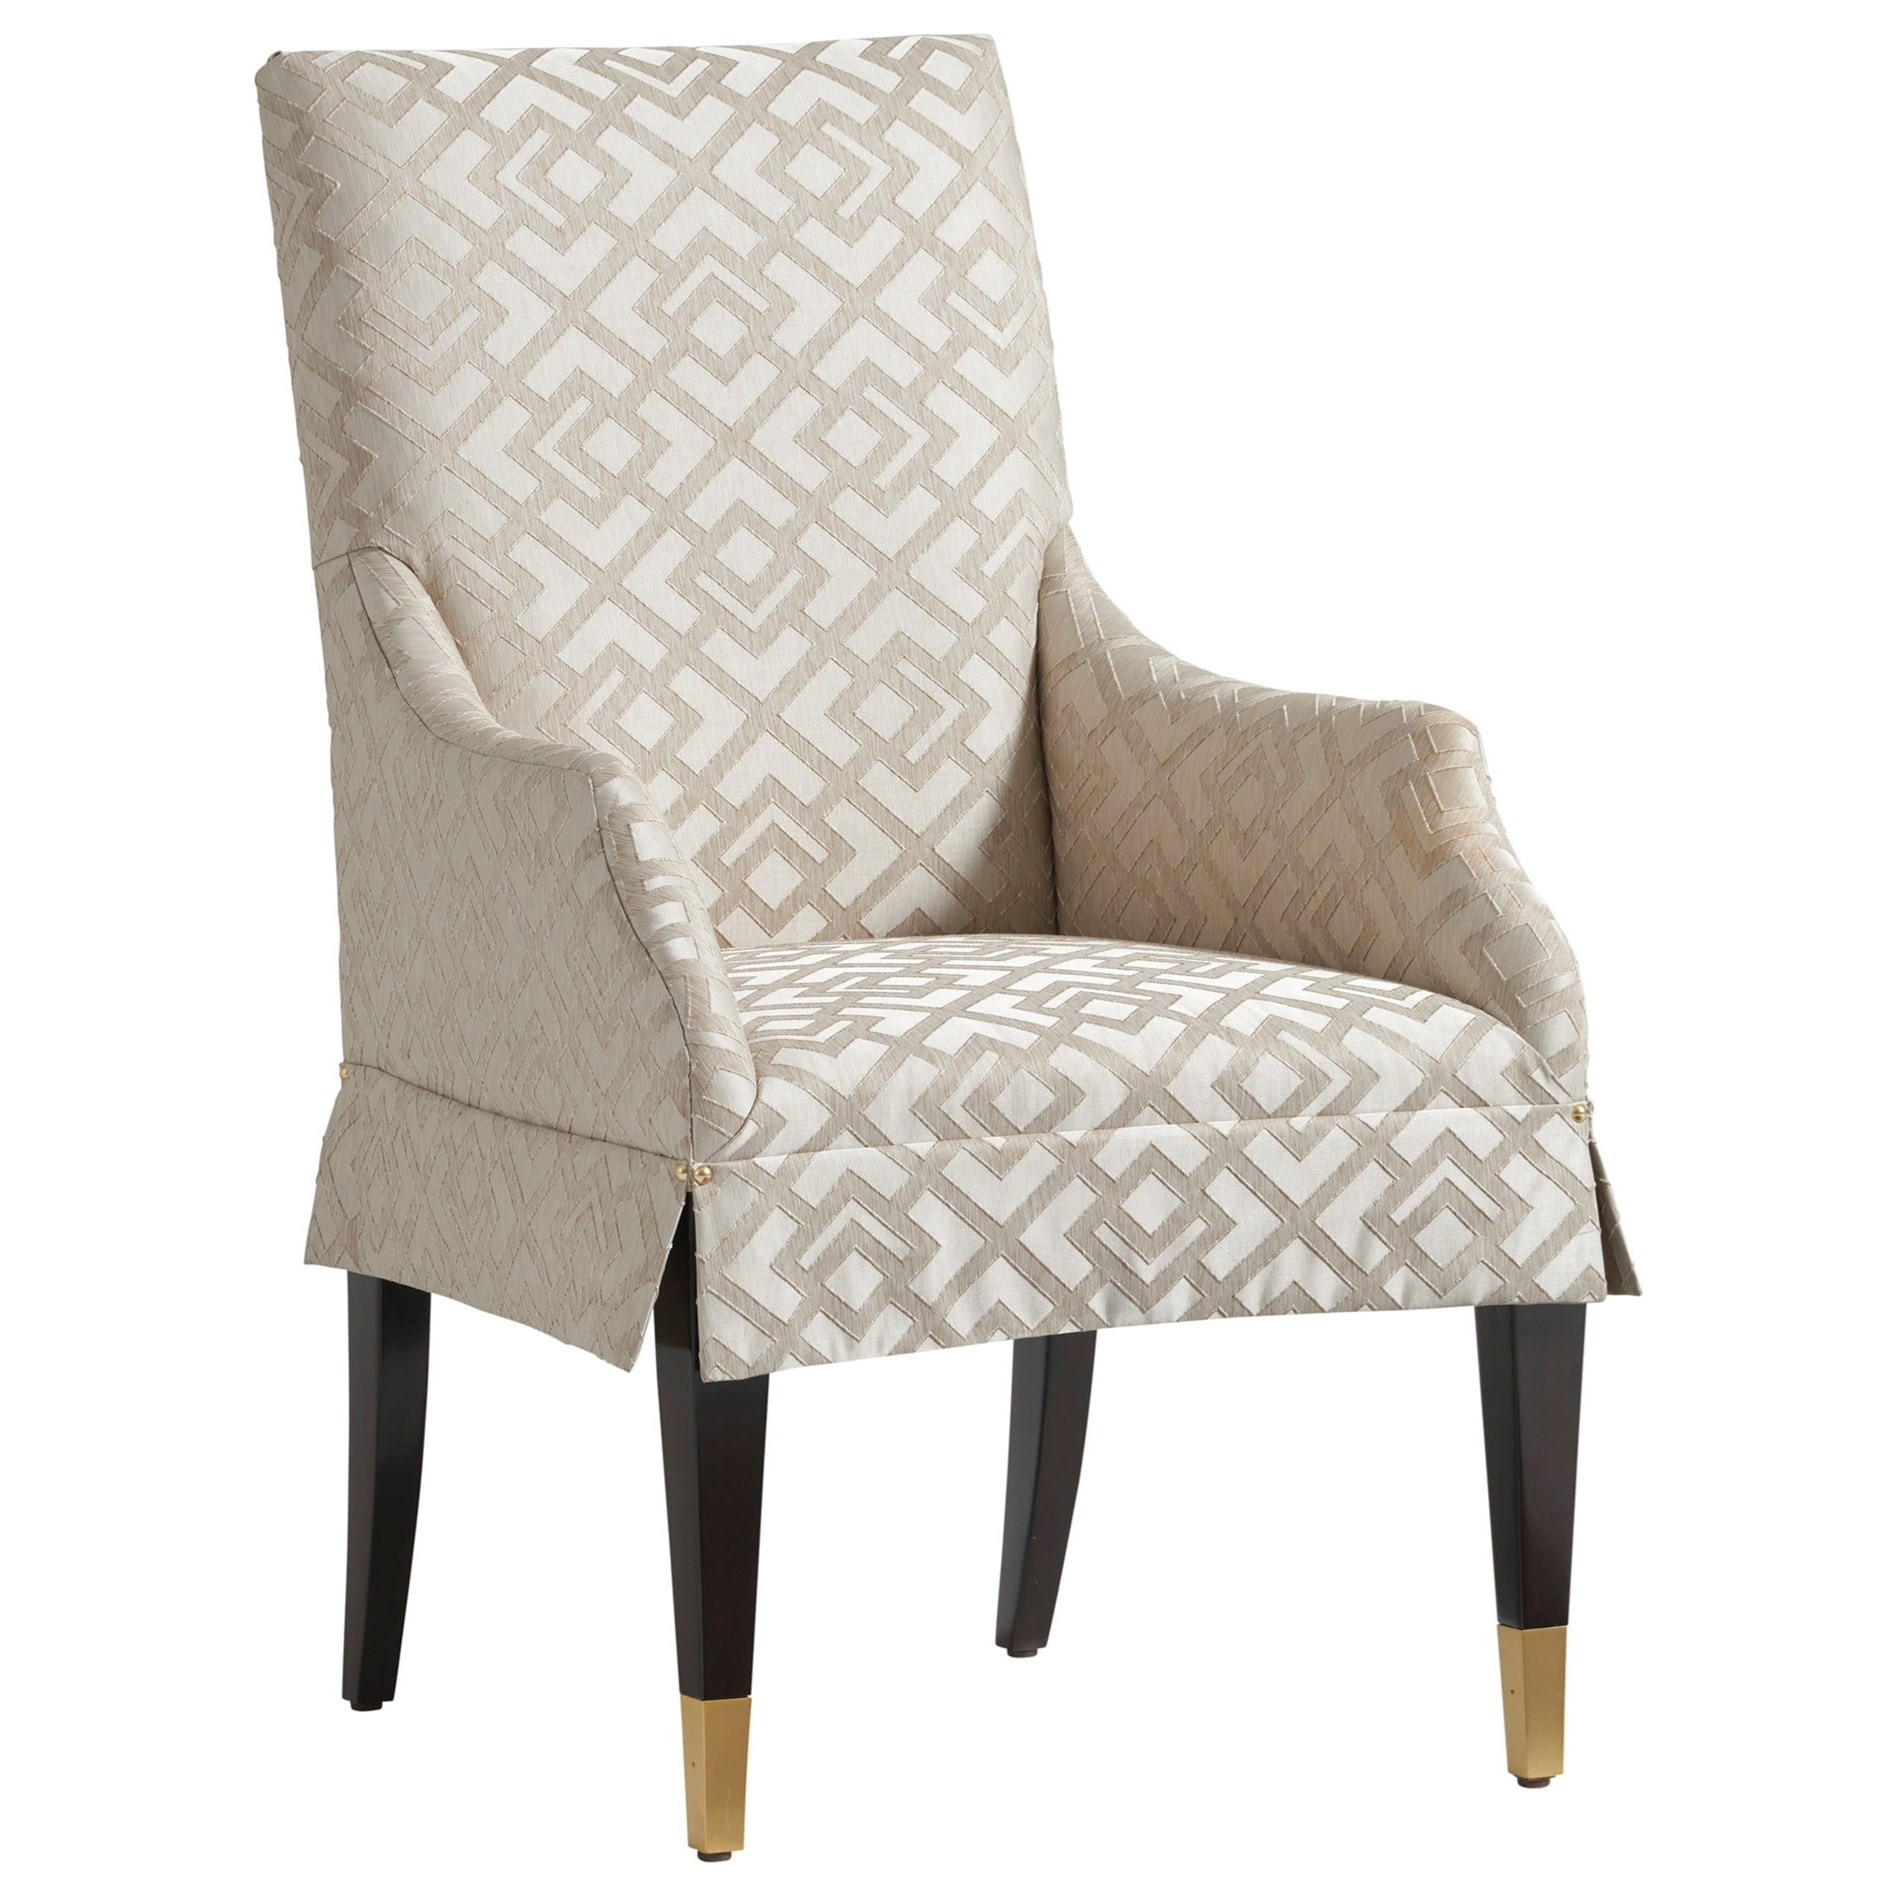 Carlyle Monarch Upholstered Arm Chair - Custom by Lexington at Baer's Furniture